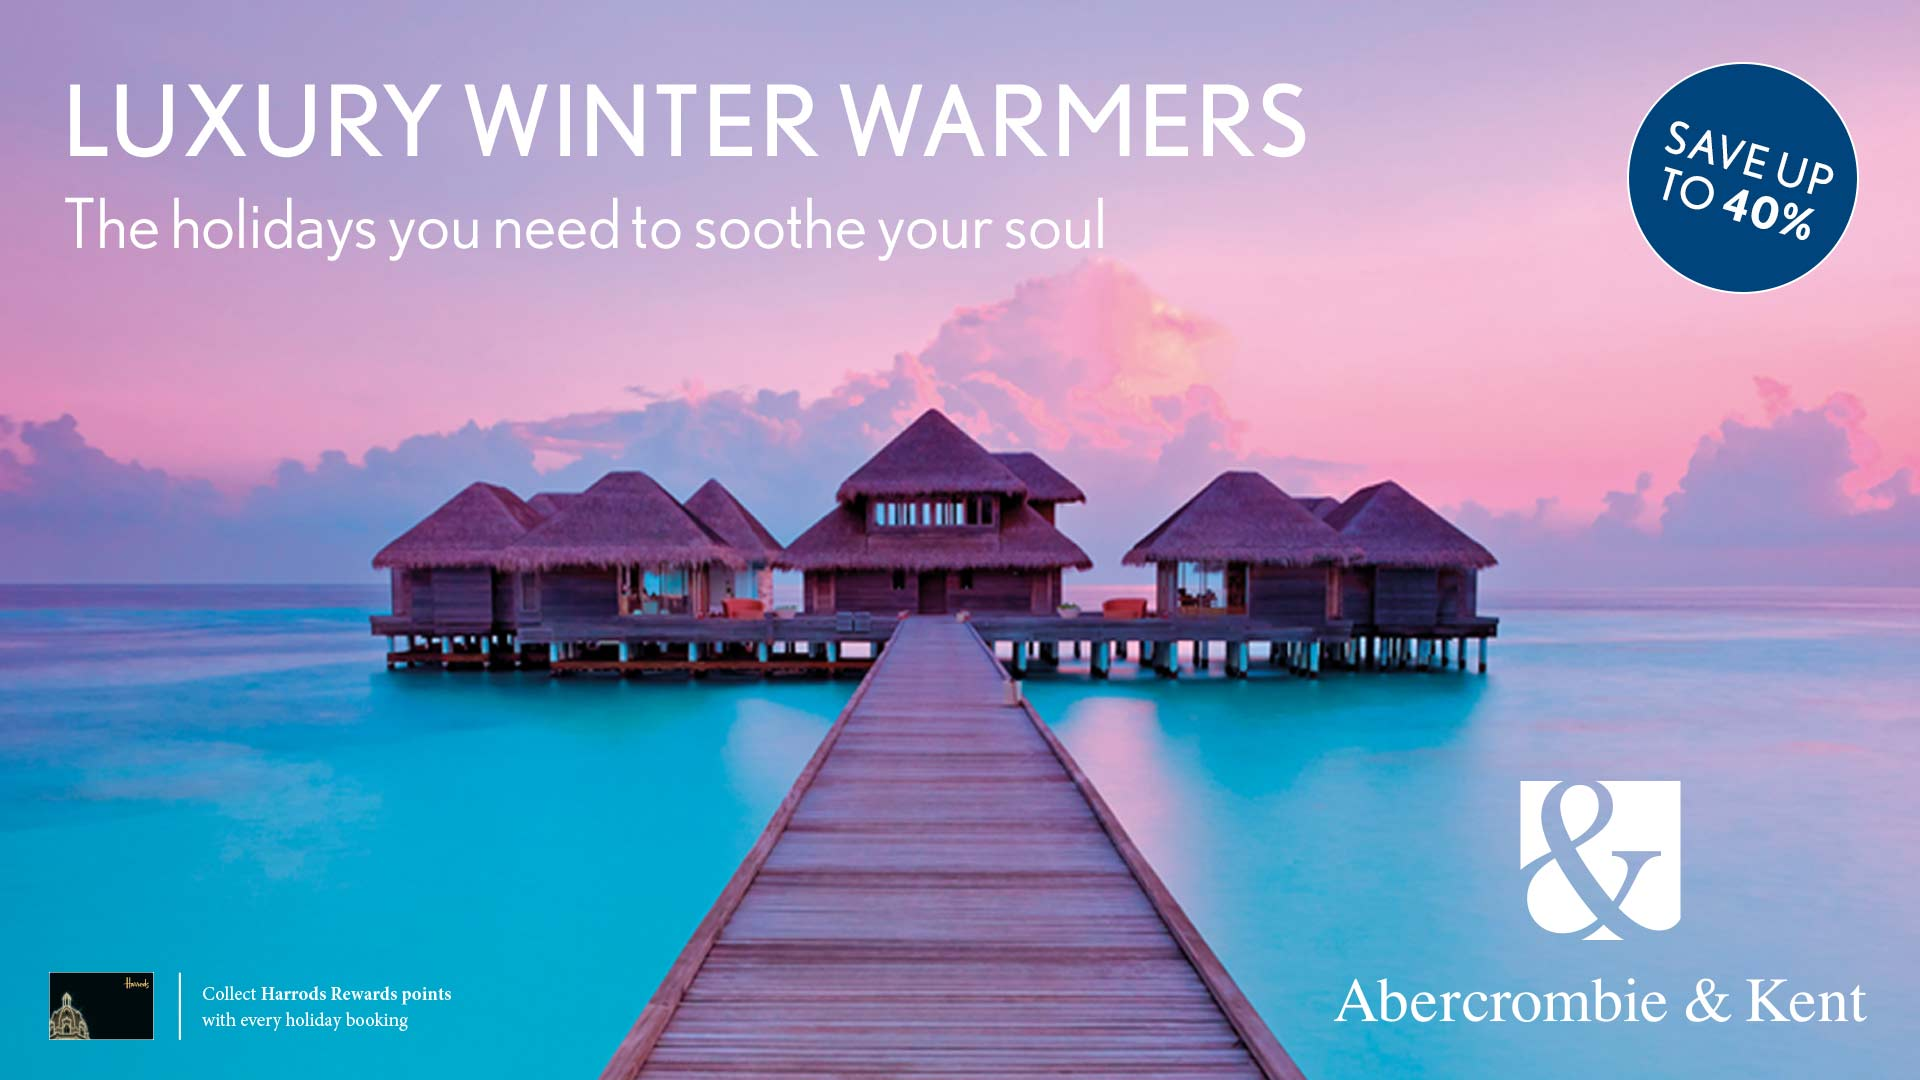 Abercrombie & Kent   The holidays you need to soothe your soul